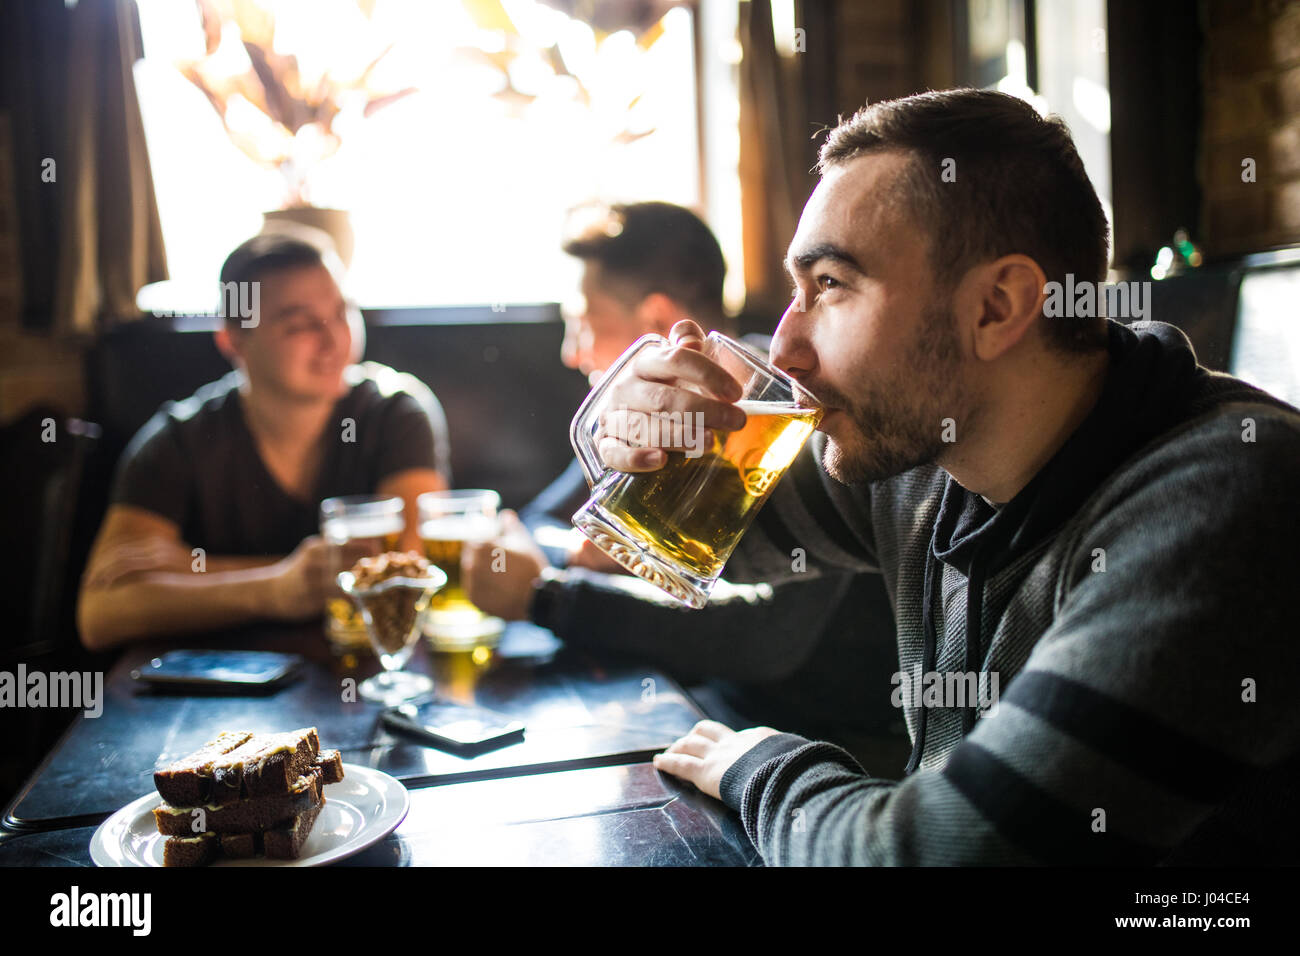 Man drink beer in front of to discussing drinking friends in pub. - Stock Image